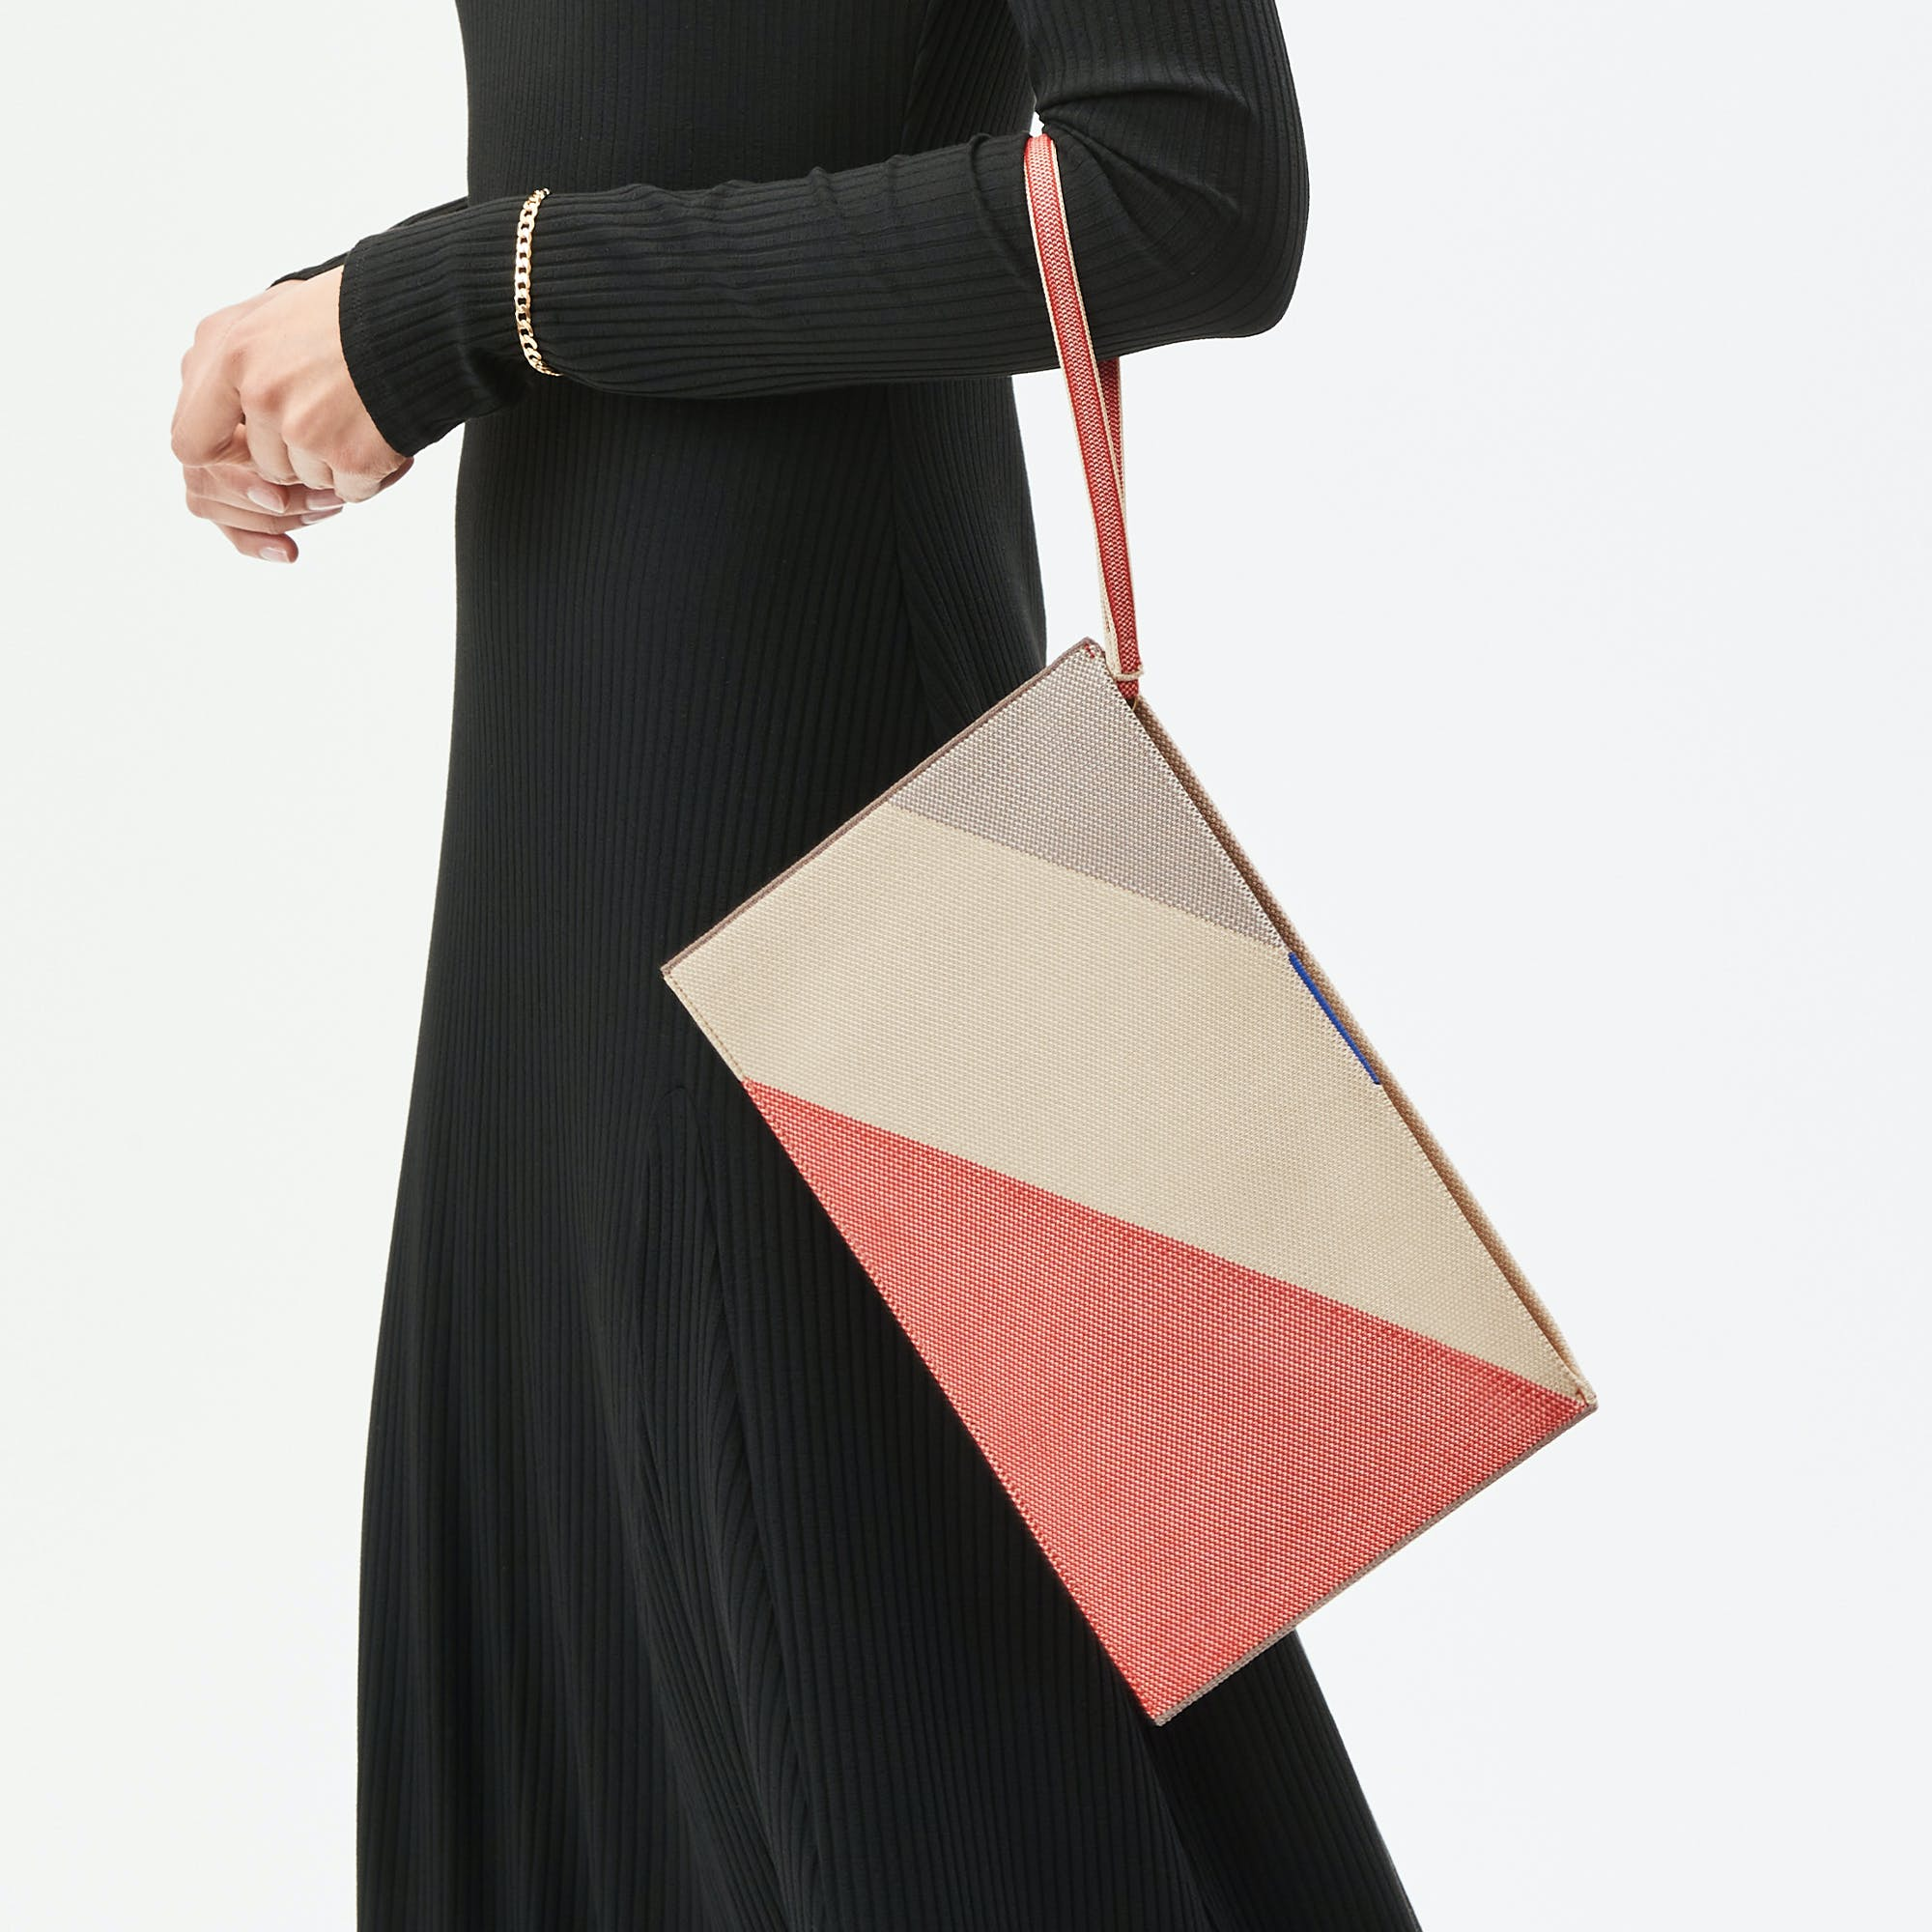 The Essential Pouch in Desert Sand shown from the front.